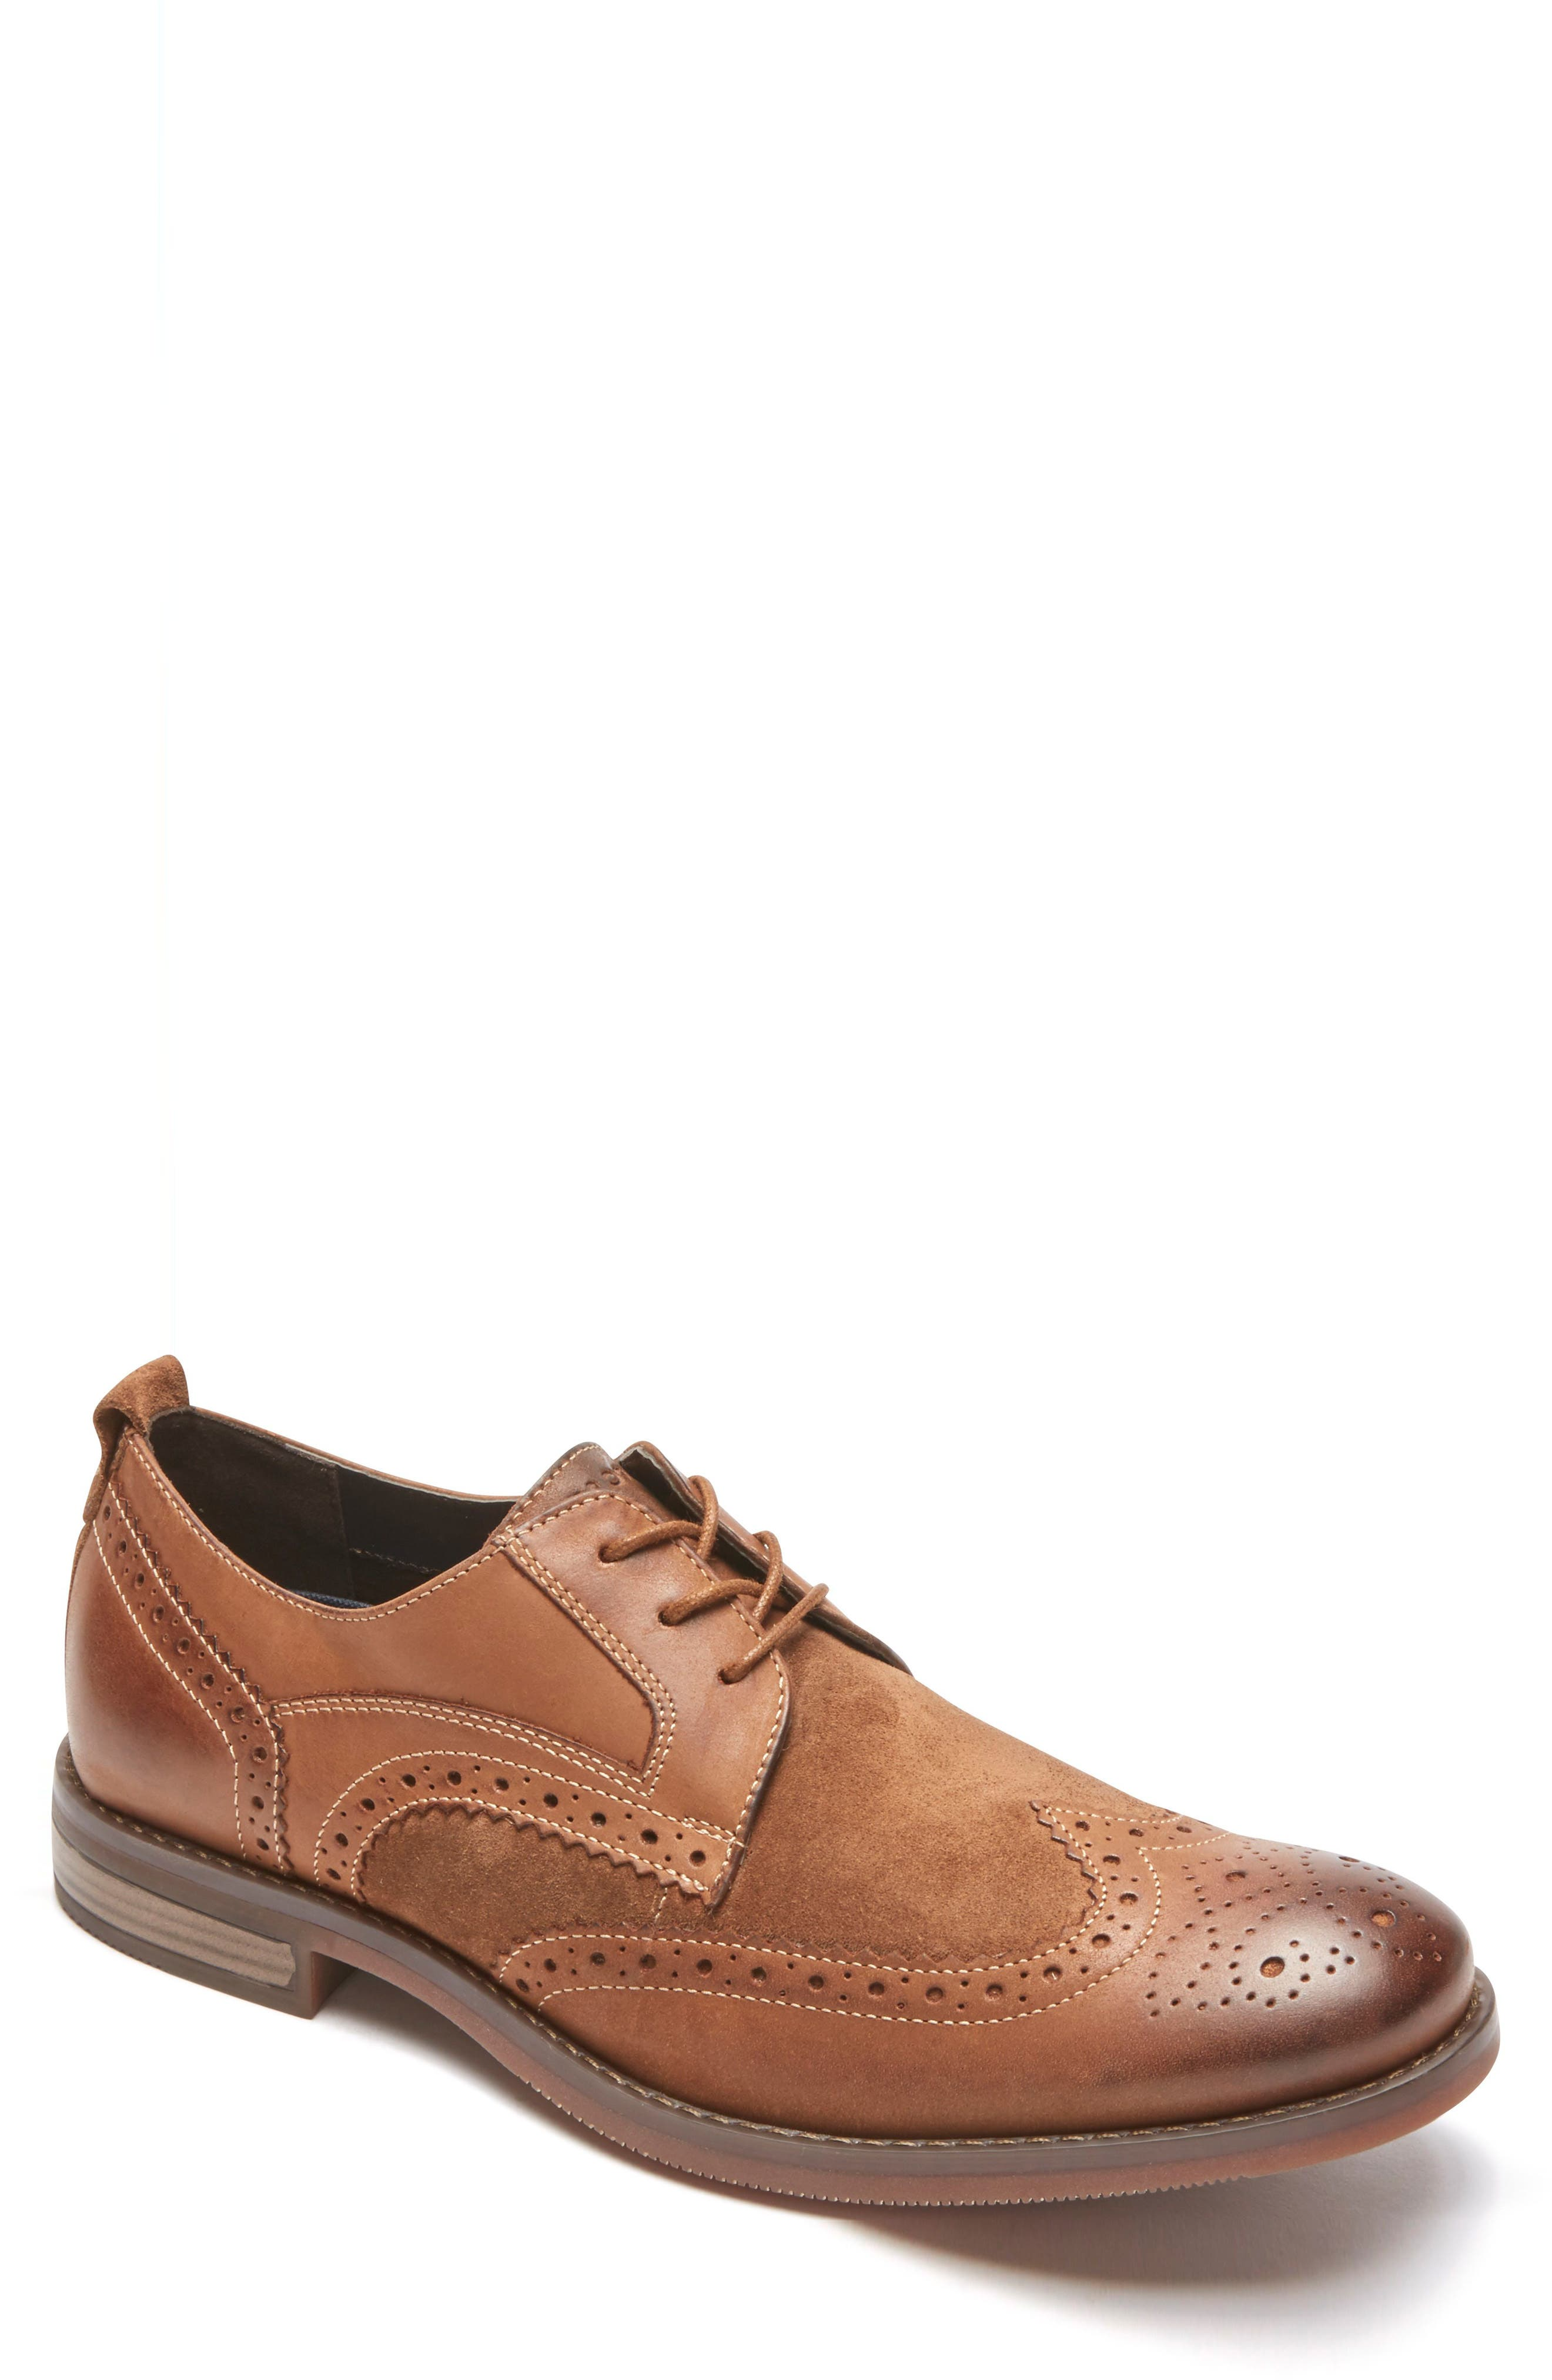 Wynstin Wingtip,                             Main thumbnail 1, color,                             Tobacco Leather/ Suede